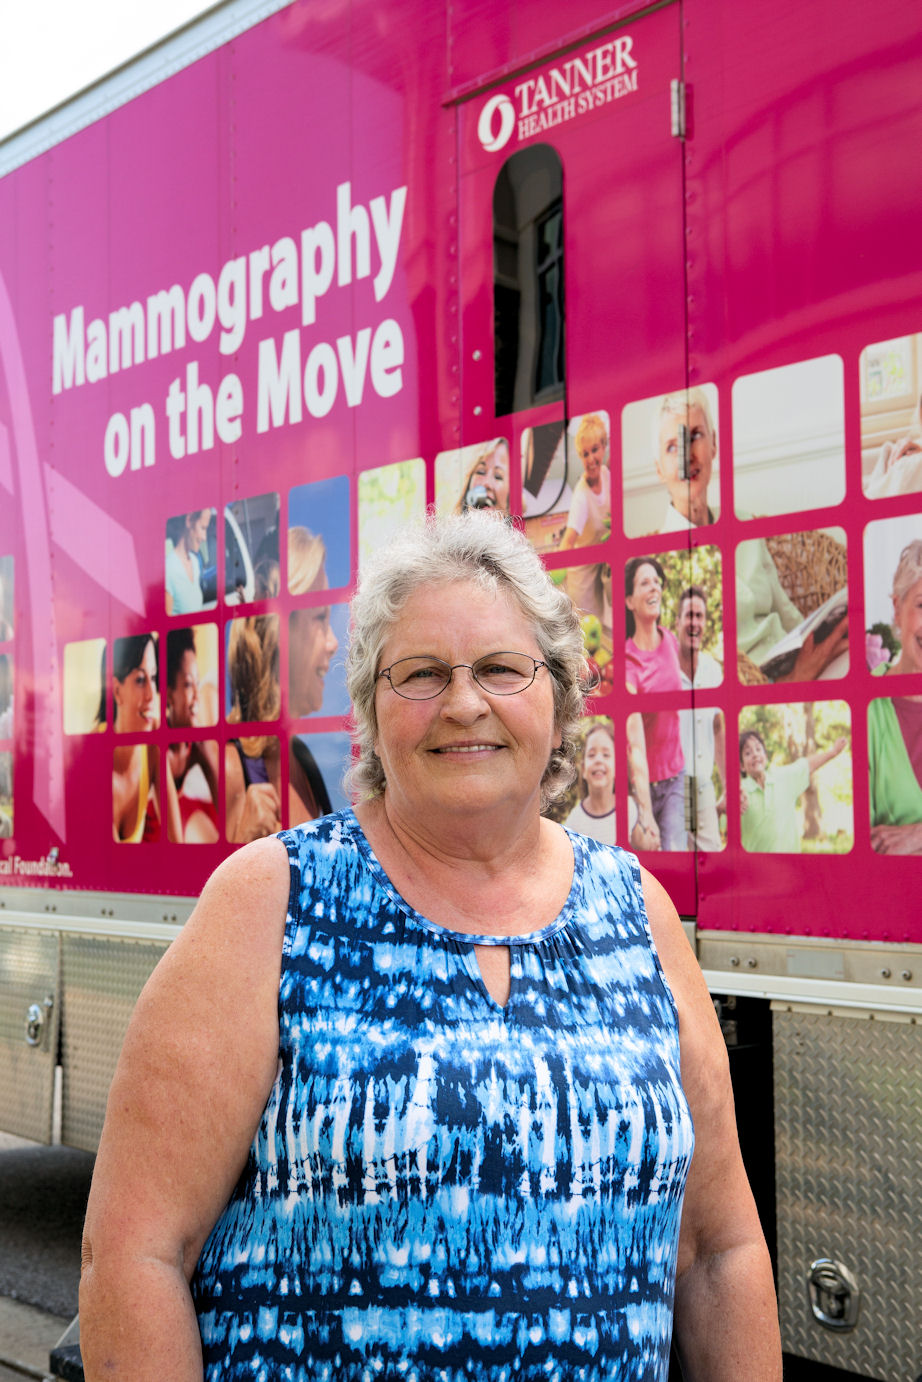 Elsie Wilson with Mammography on the Move